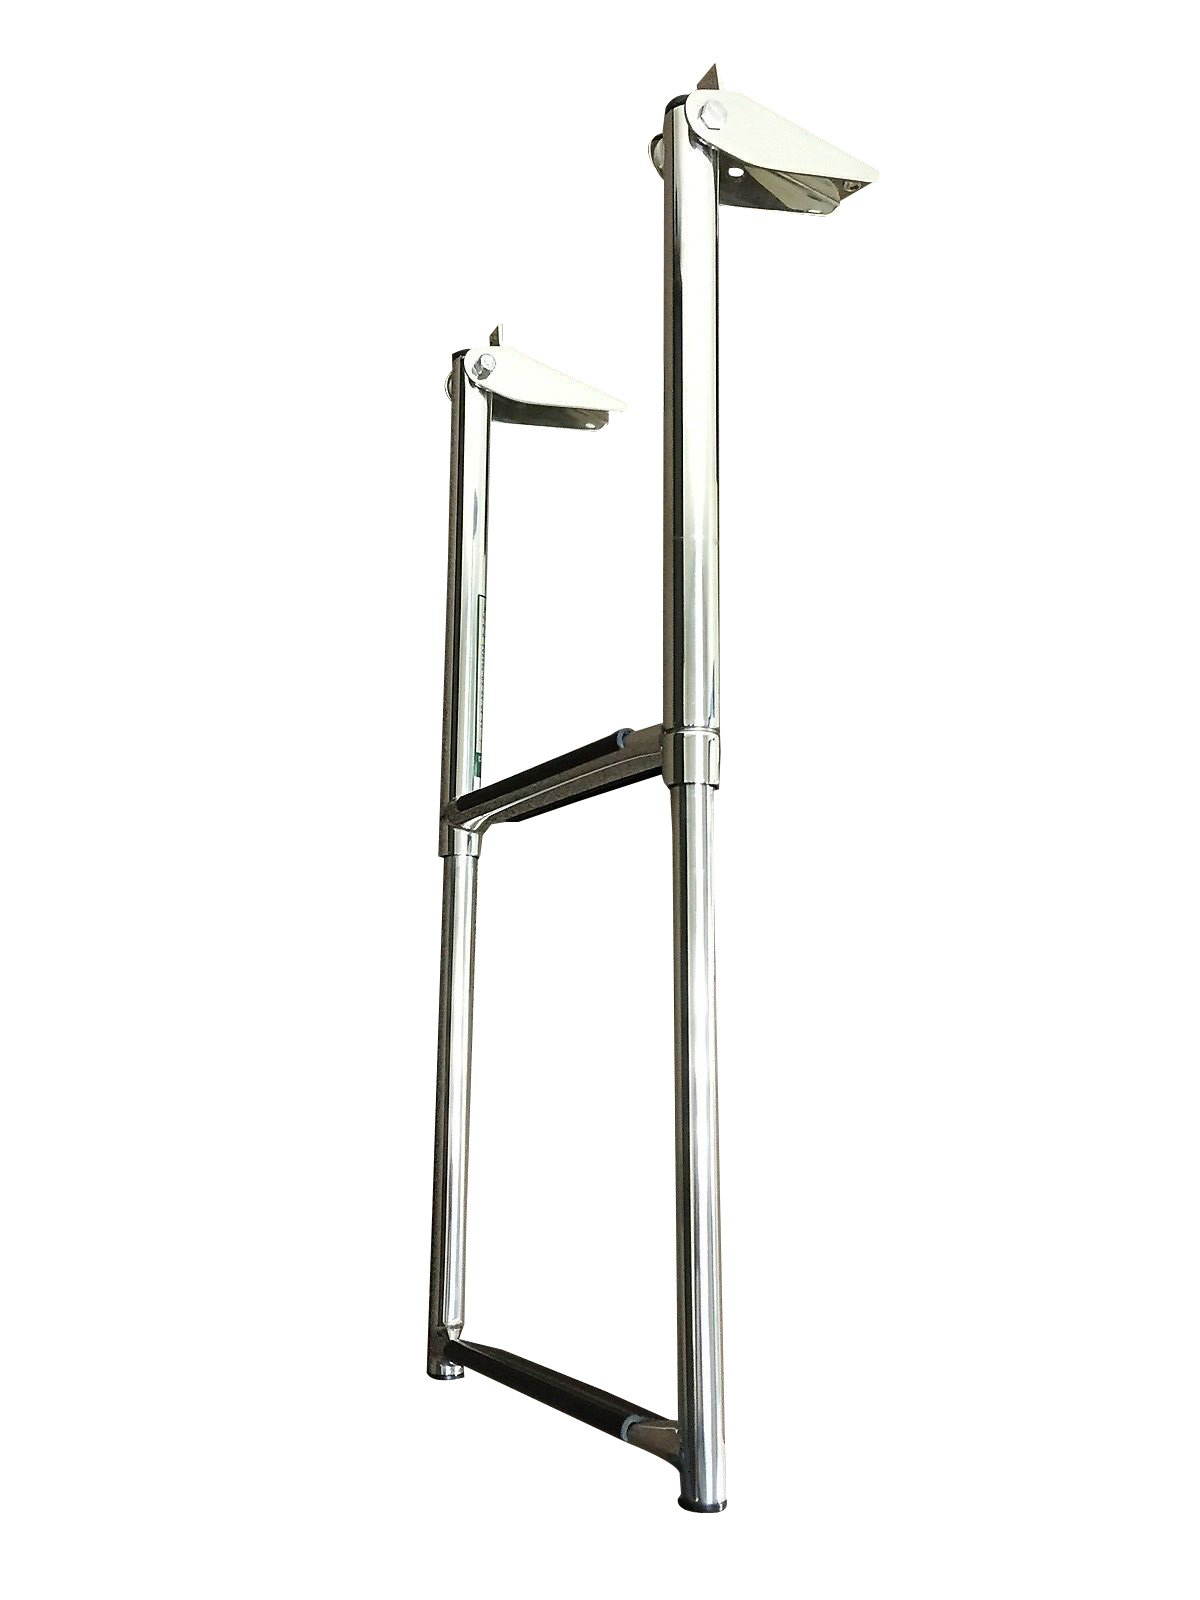 MARINE BOAT SS 2 STEPS TELESCOPING LADDER OVER PLATFORM RUBBER FOOT GRIPS by Pactrade Marine